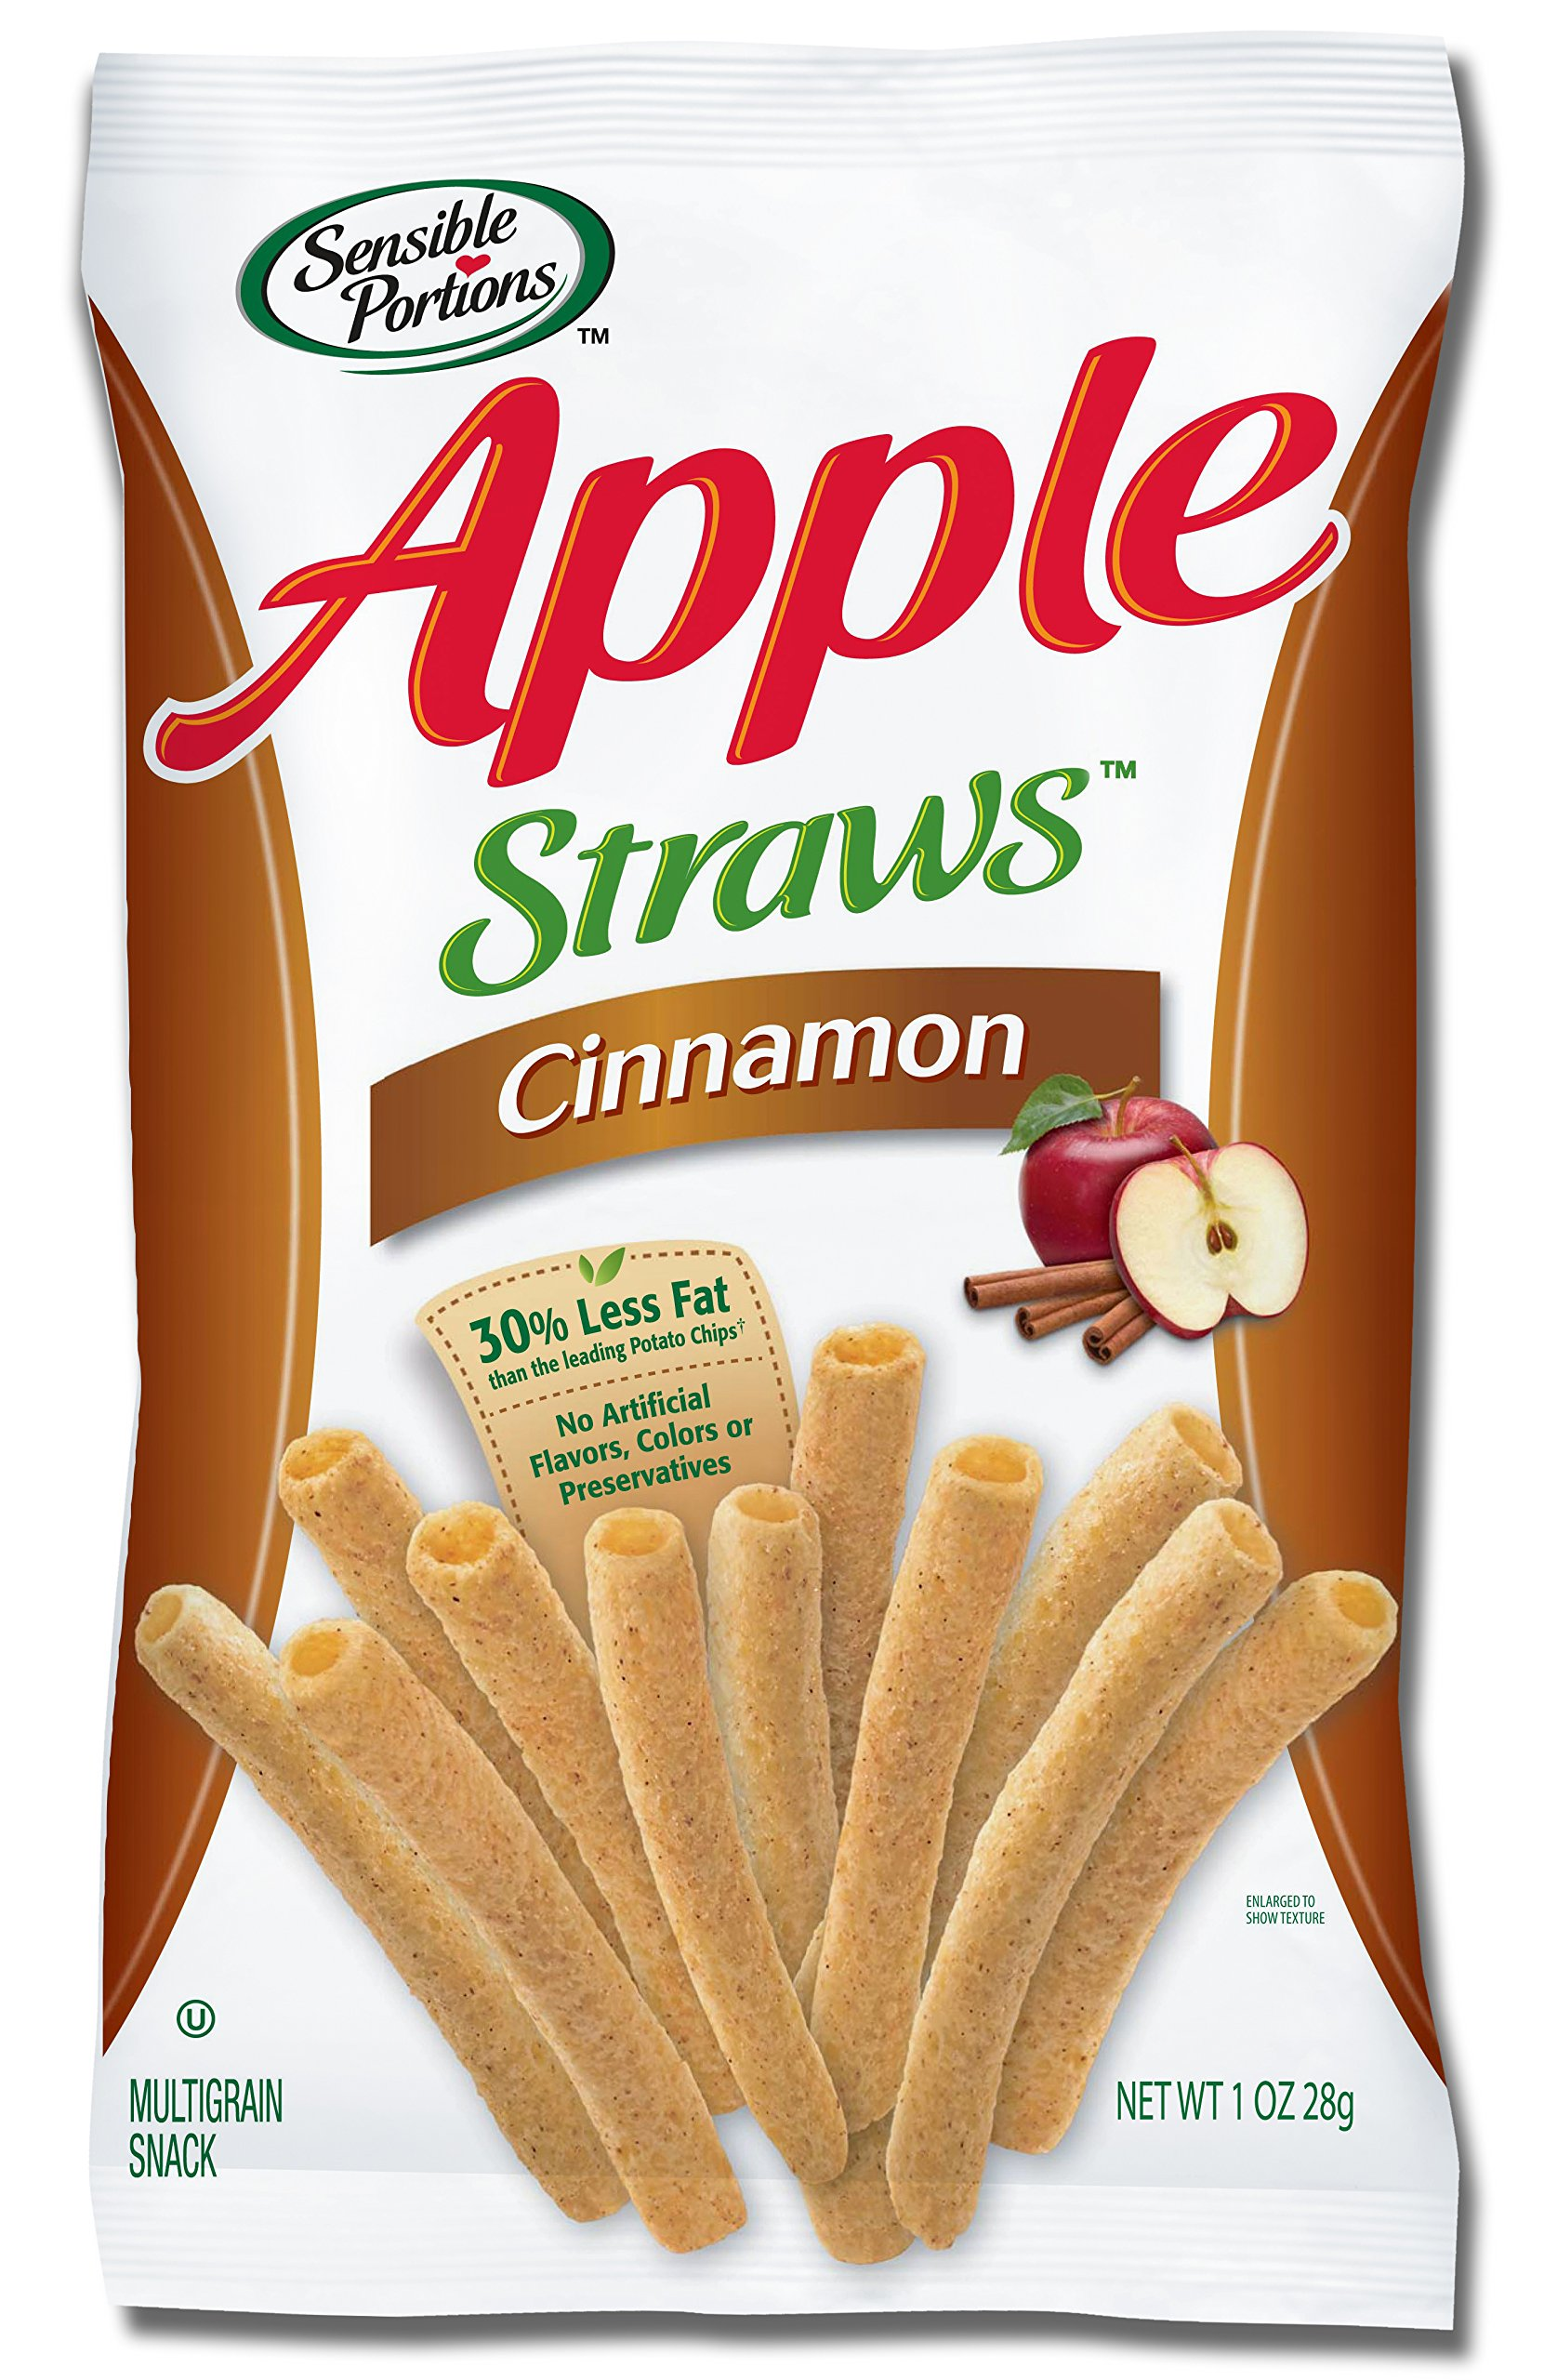 Sensible Portions Apple Straws, Cinnamon, 1 oz. (Pack of 24) by Sensible Portions